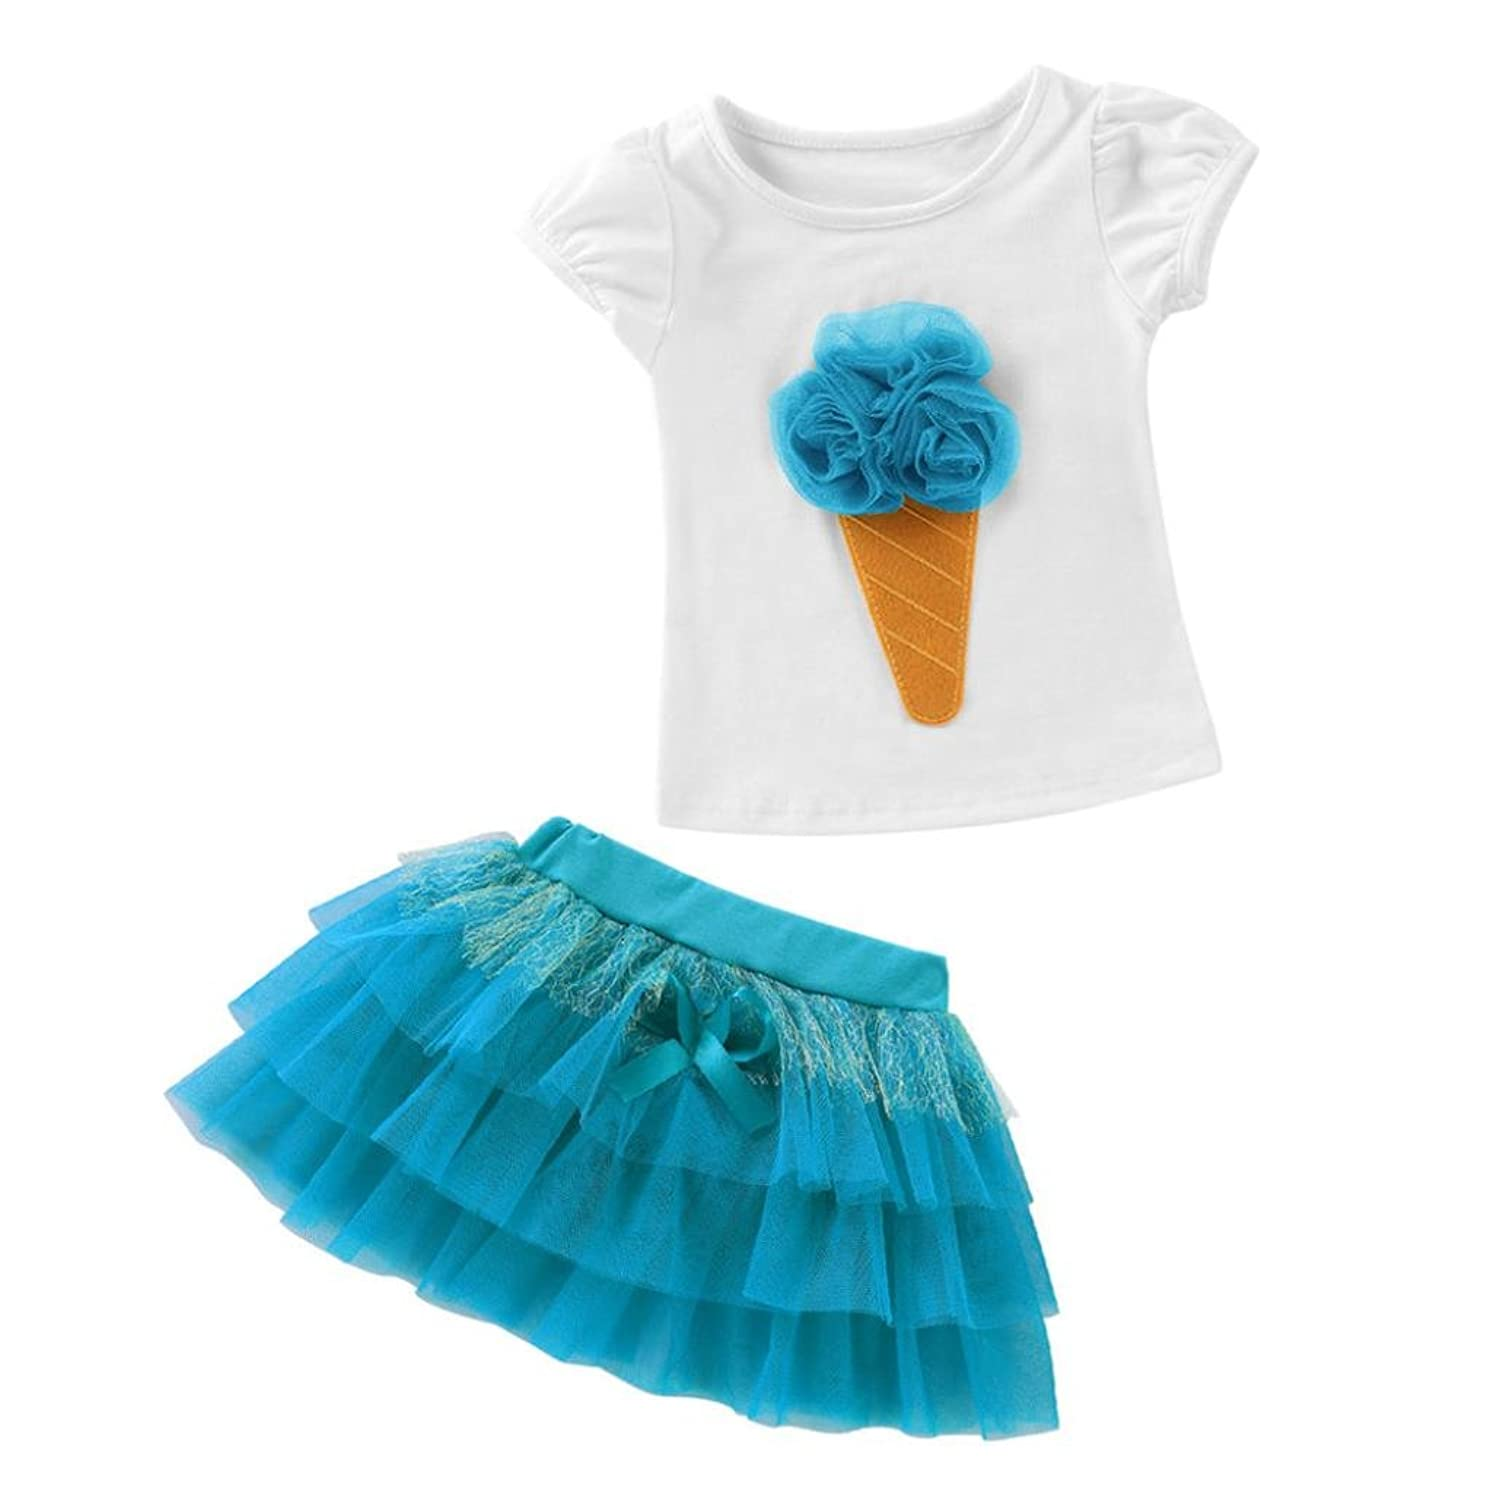 af452a72ccca1e Kids Favorite Desserts,3D Ice Cream Pattern On The T-shirt,Pair With A  Princess Lace Tutu Skirt ❤ So cute and sweet outfits for your baby in summer  ...